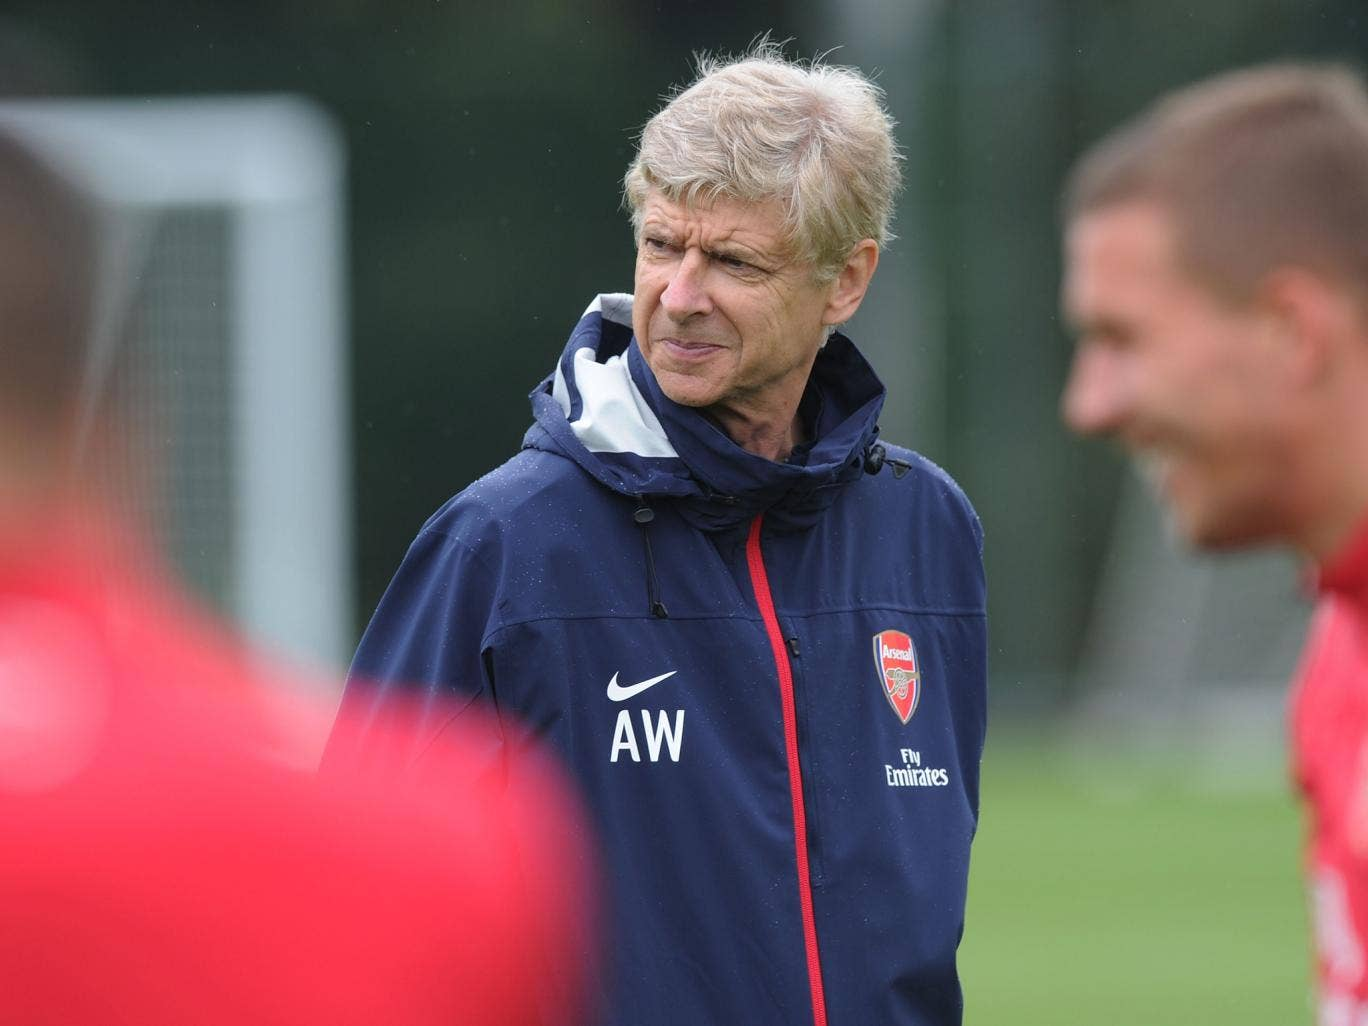 Arsene Wenger has attempted to calm frustrations over Arsenal's lack of transfers this summer